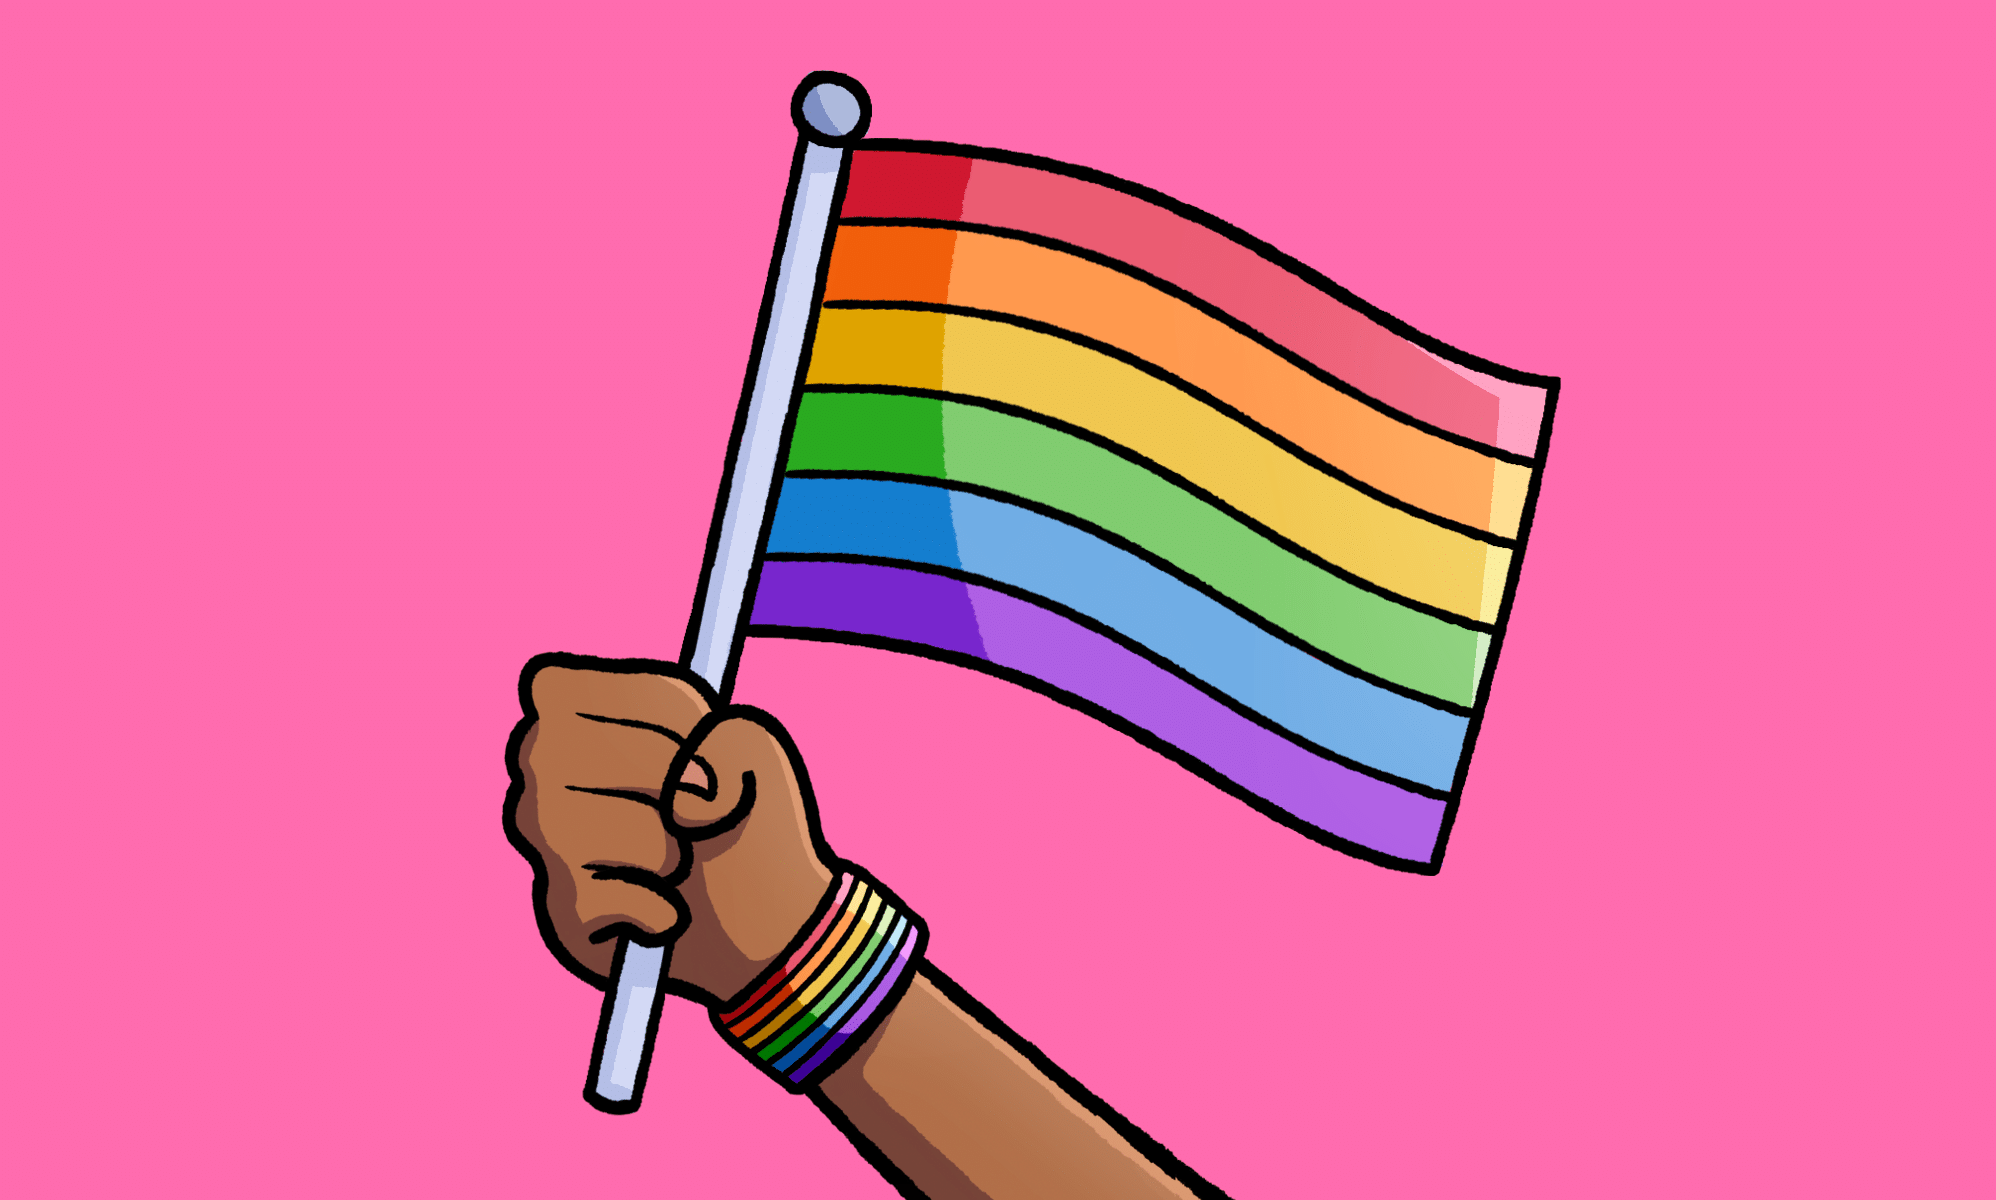 Homophobic attacks rose 147% in the UK following Brexit vote